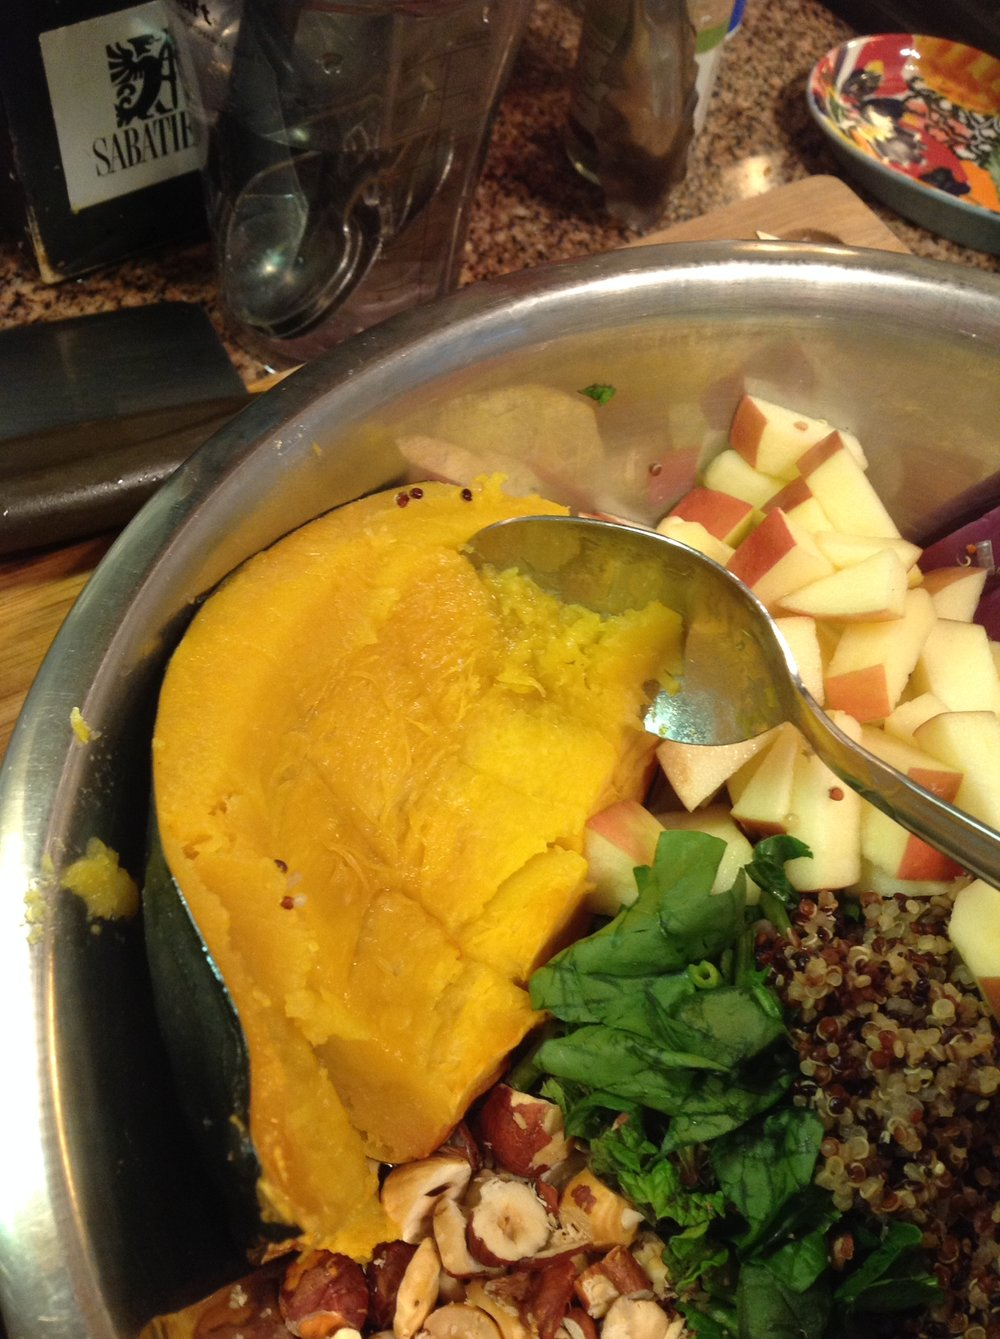 Chef's Tip: The natural sweetness from the roasted squash will balance the savory flavors of the stuffing